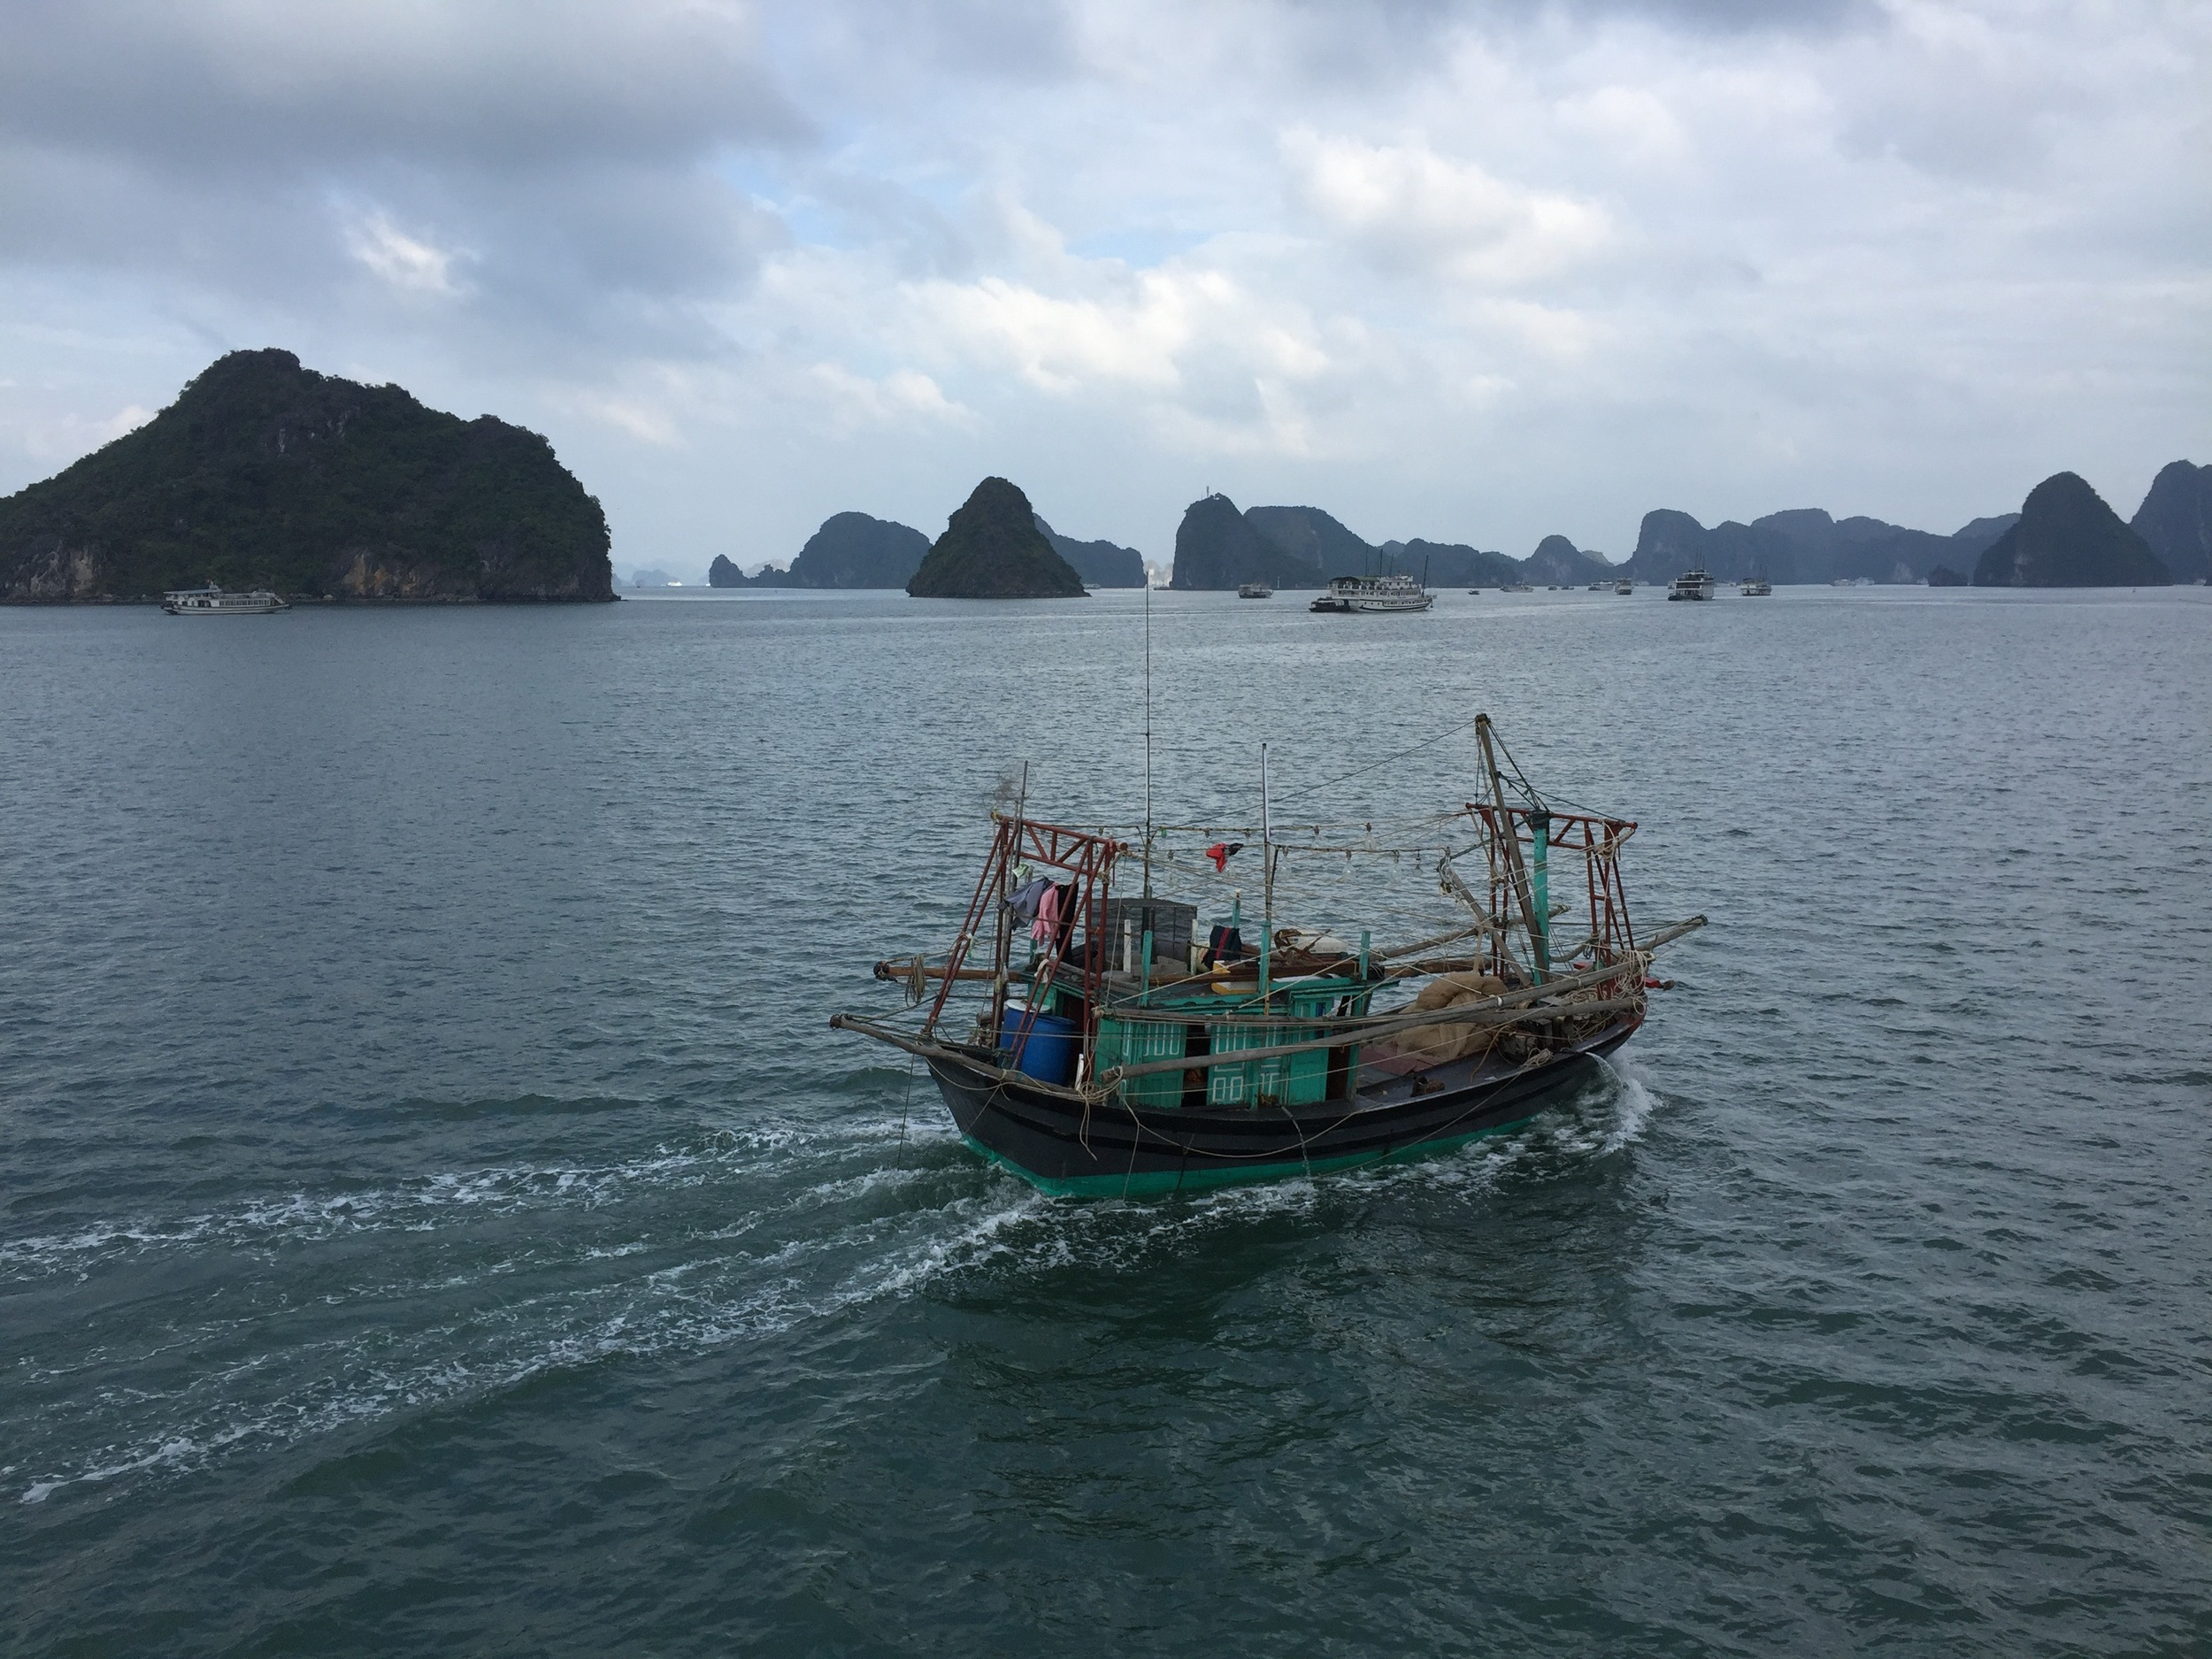 Halong Bay, within north Vietnam's Gulf of Tonkin and famous for incidents that led to the official beginning of the Vietnam War in 1965, is now a primary tourist destination in Vietnam